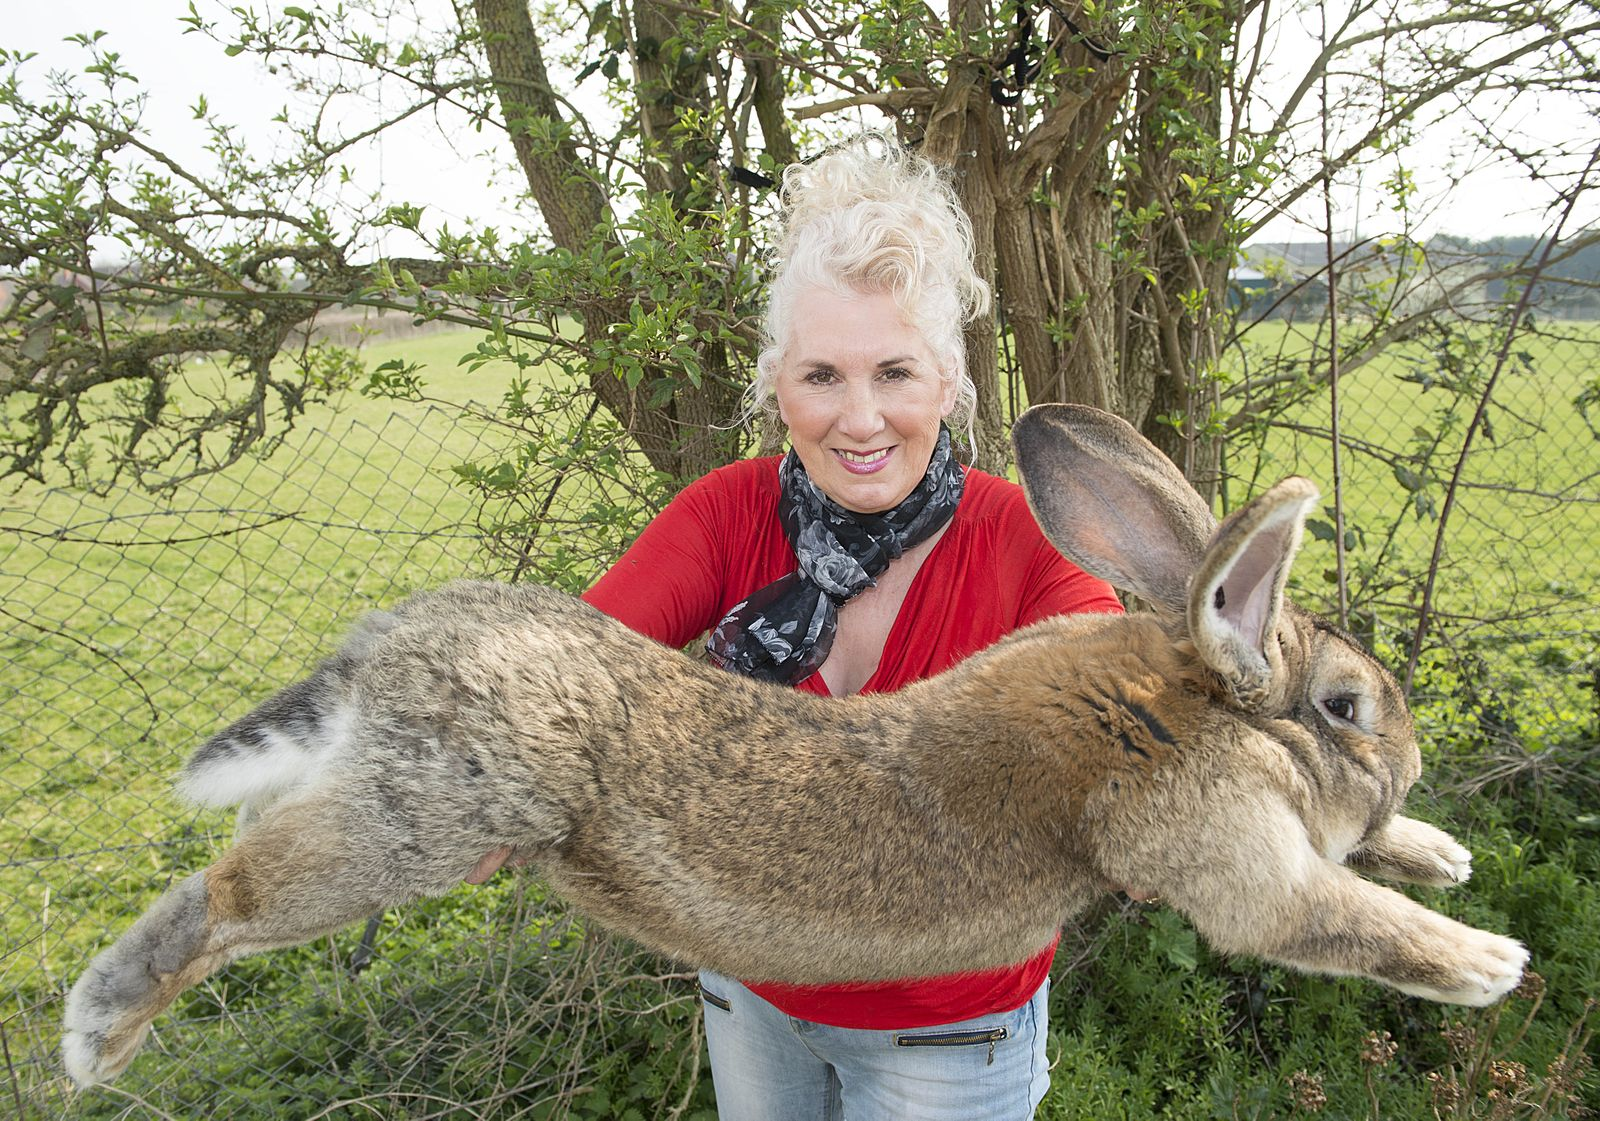 Annette Edwards From Stoulton Worcestershire Who Has A Champion Giant Rabbit Darius And His Son Jeff Who Is Catching Up Fast. Picture By Damien Mcfadden: 07968 308252.